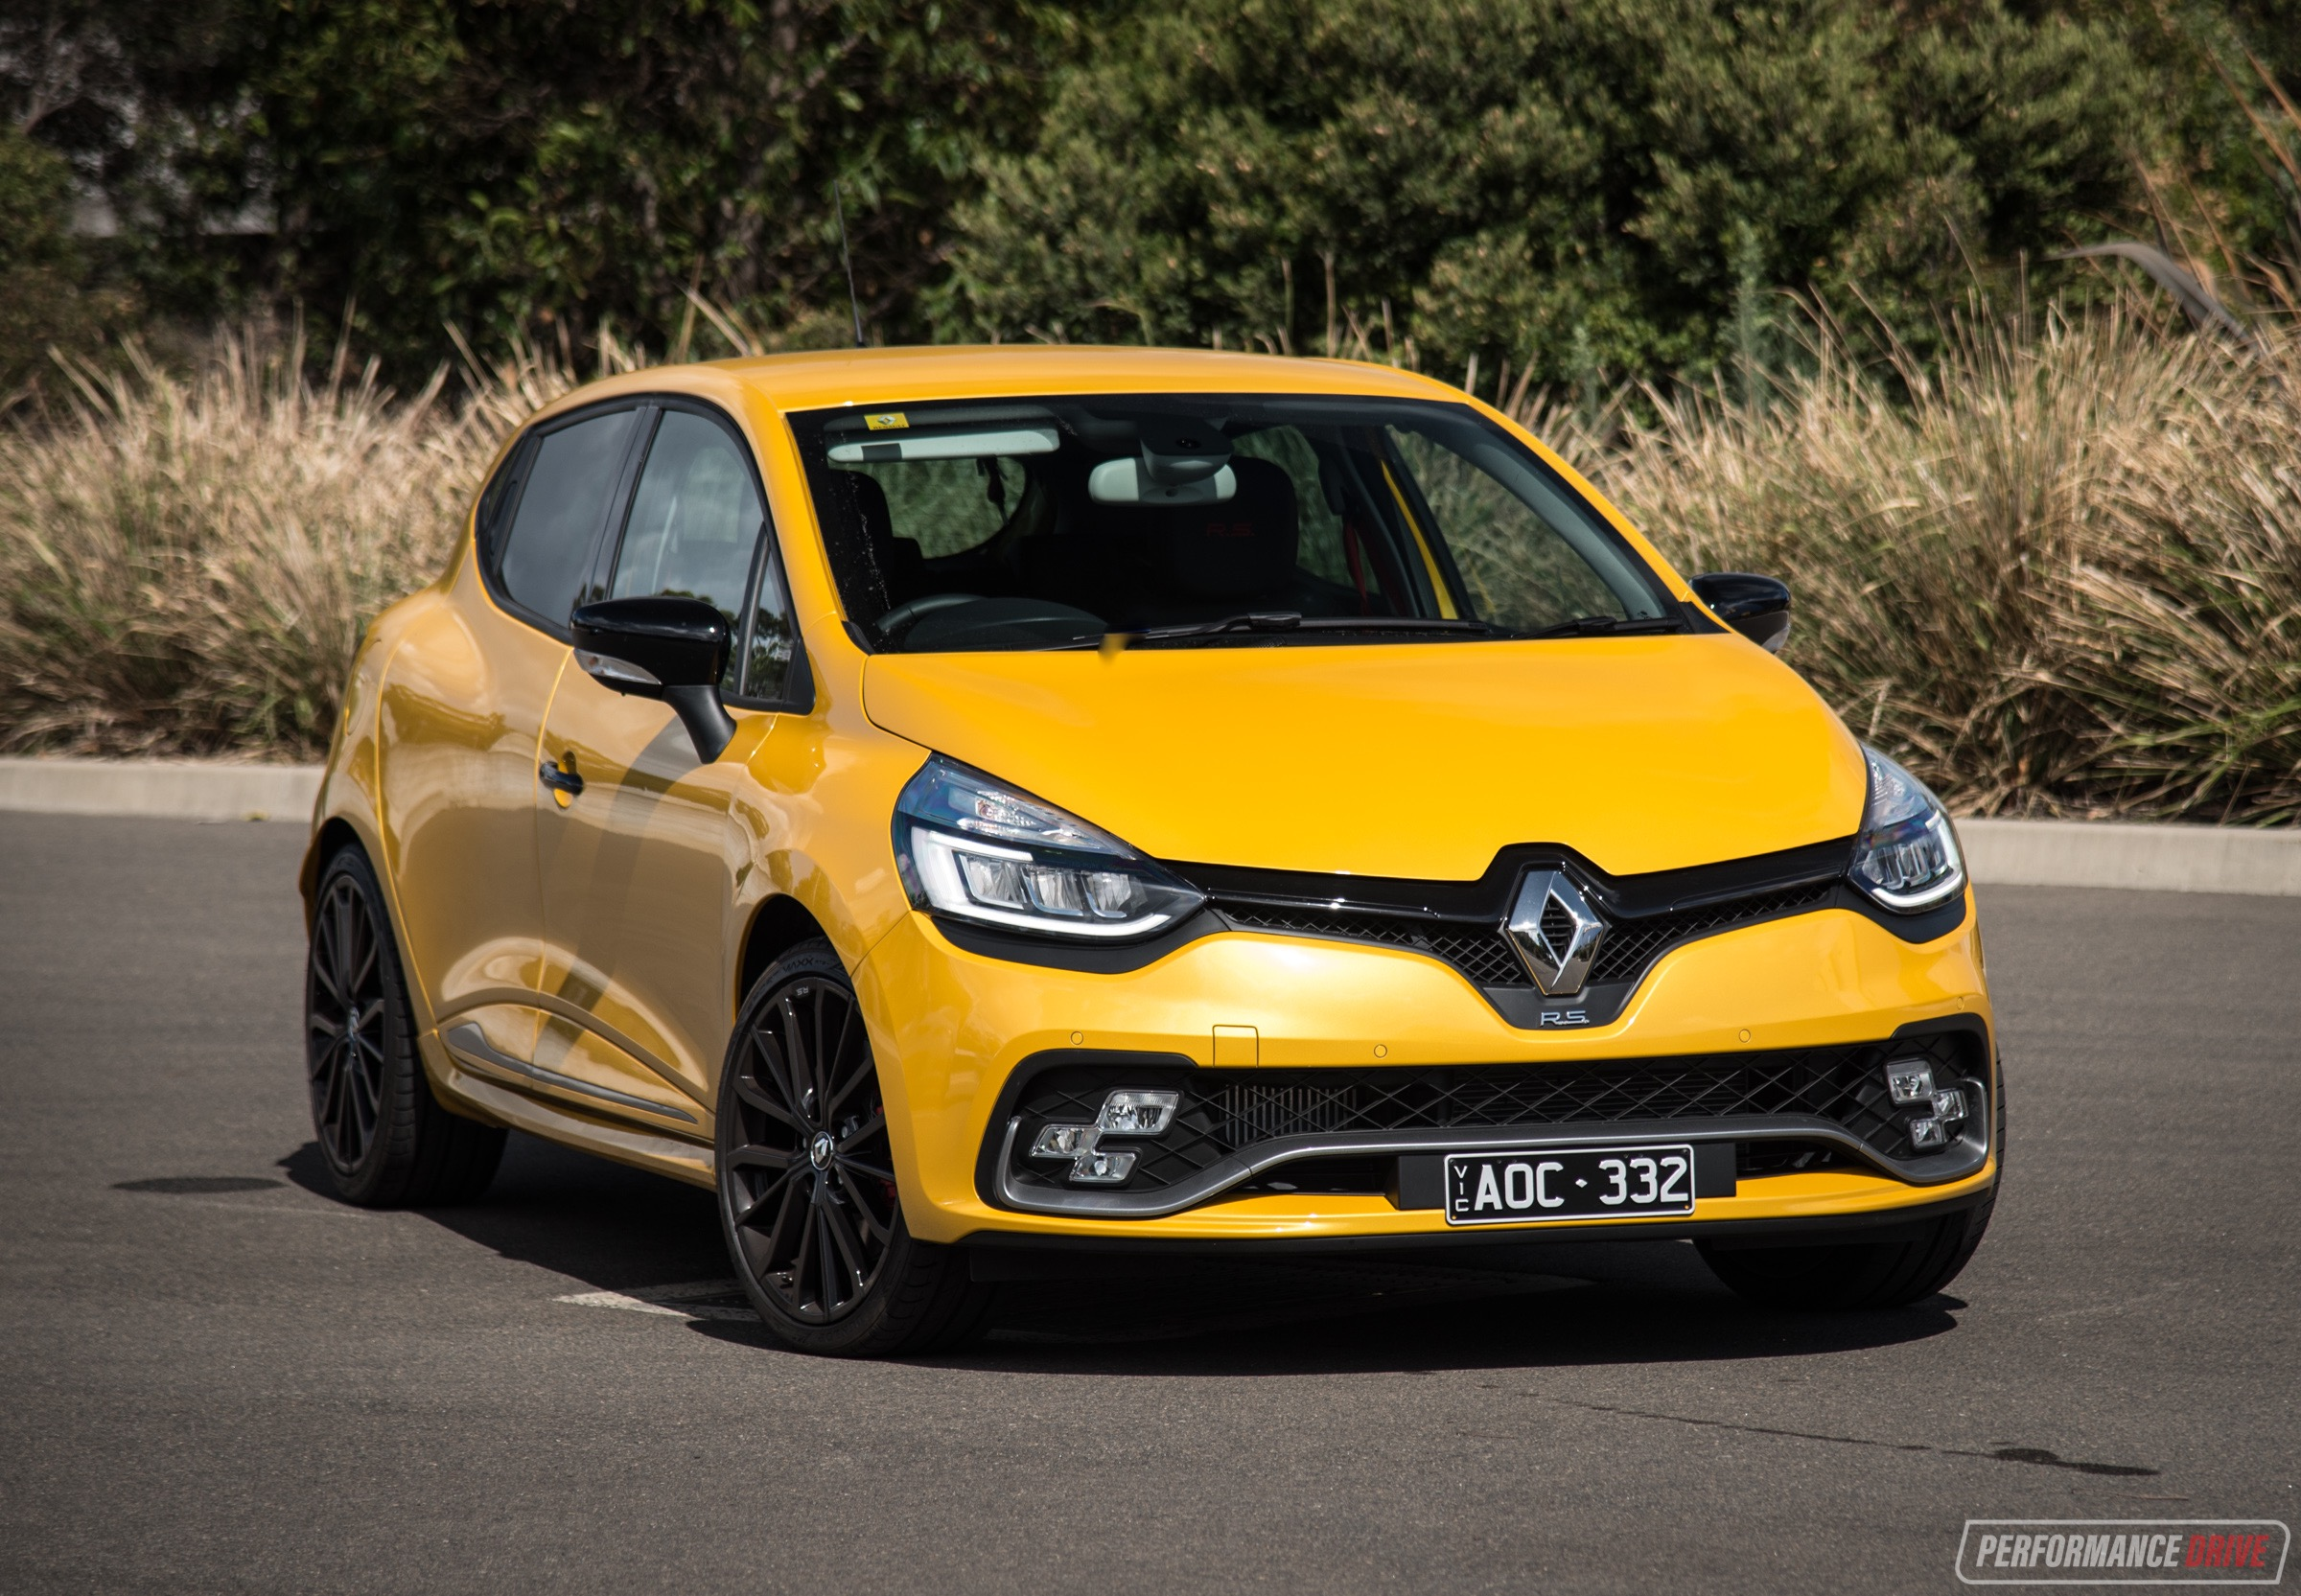 2018 Renault Clio R S 200 Cup Review Video Performancedrive